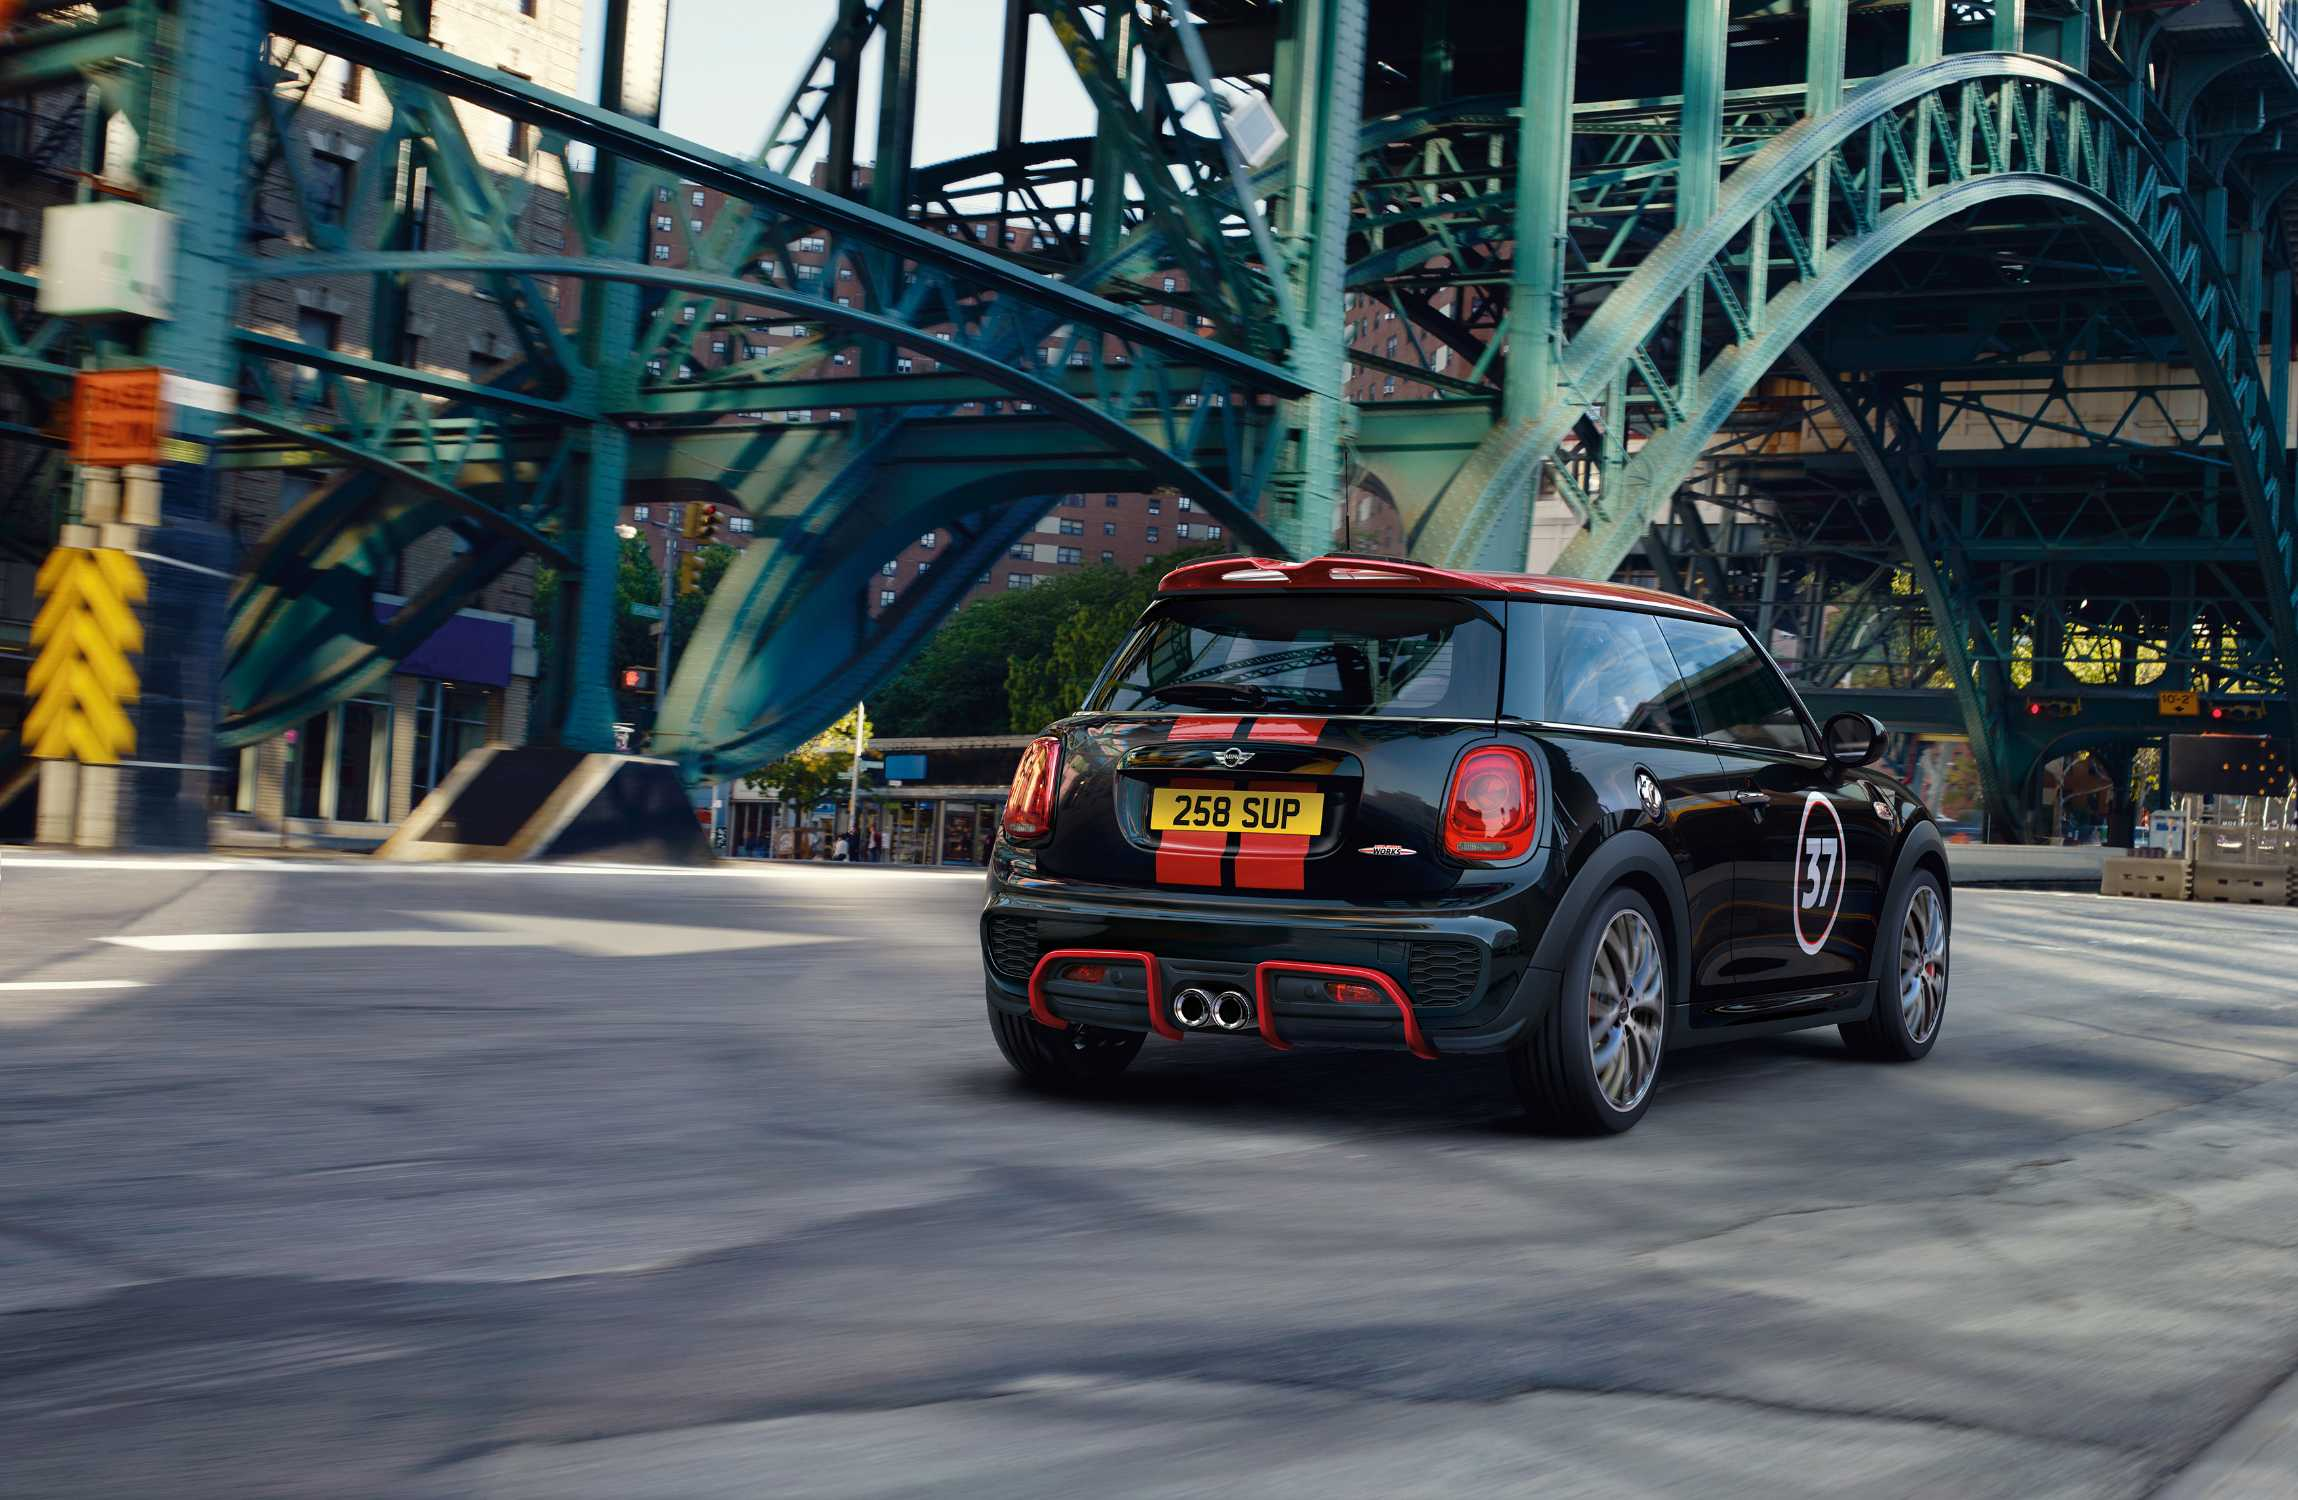 Racing Feeling With A Tradition John Cooper Works Tuning At The